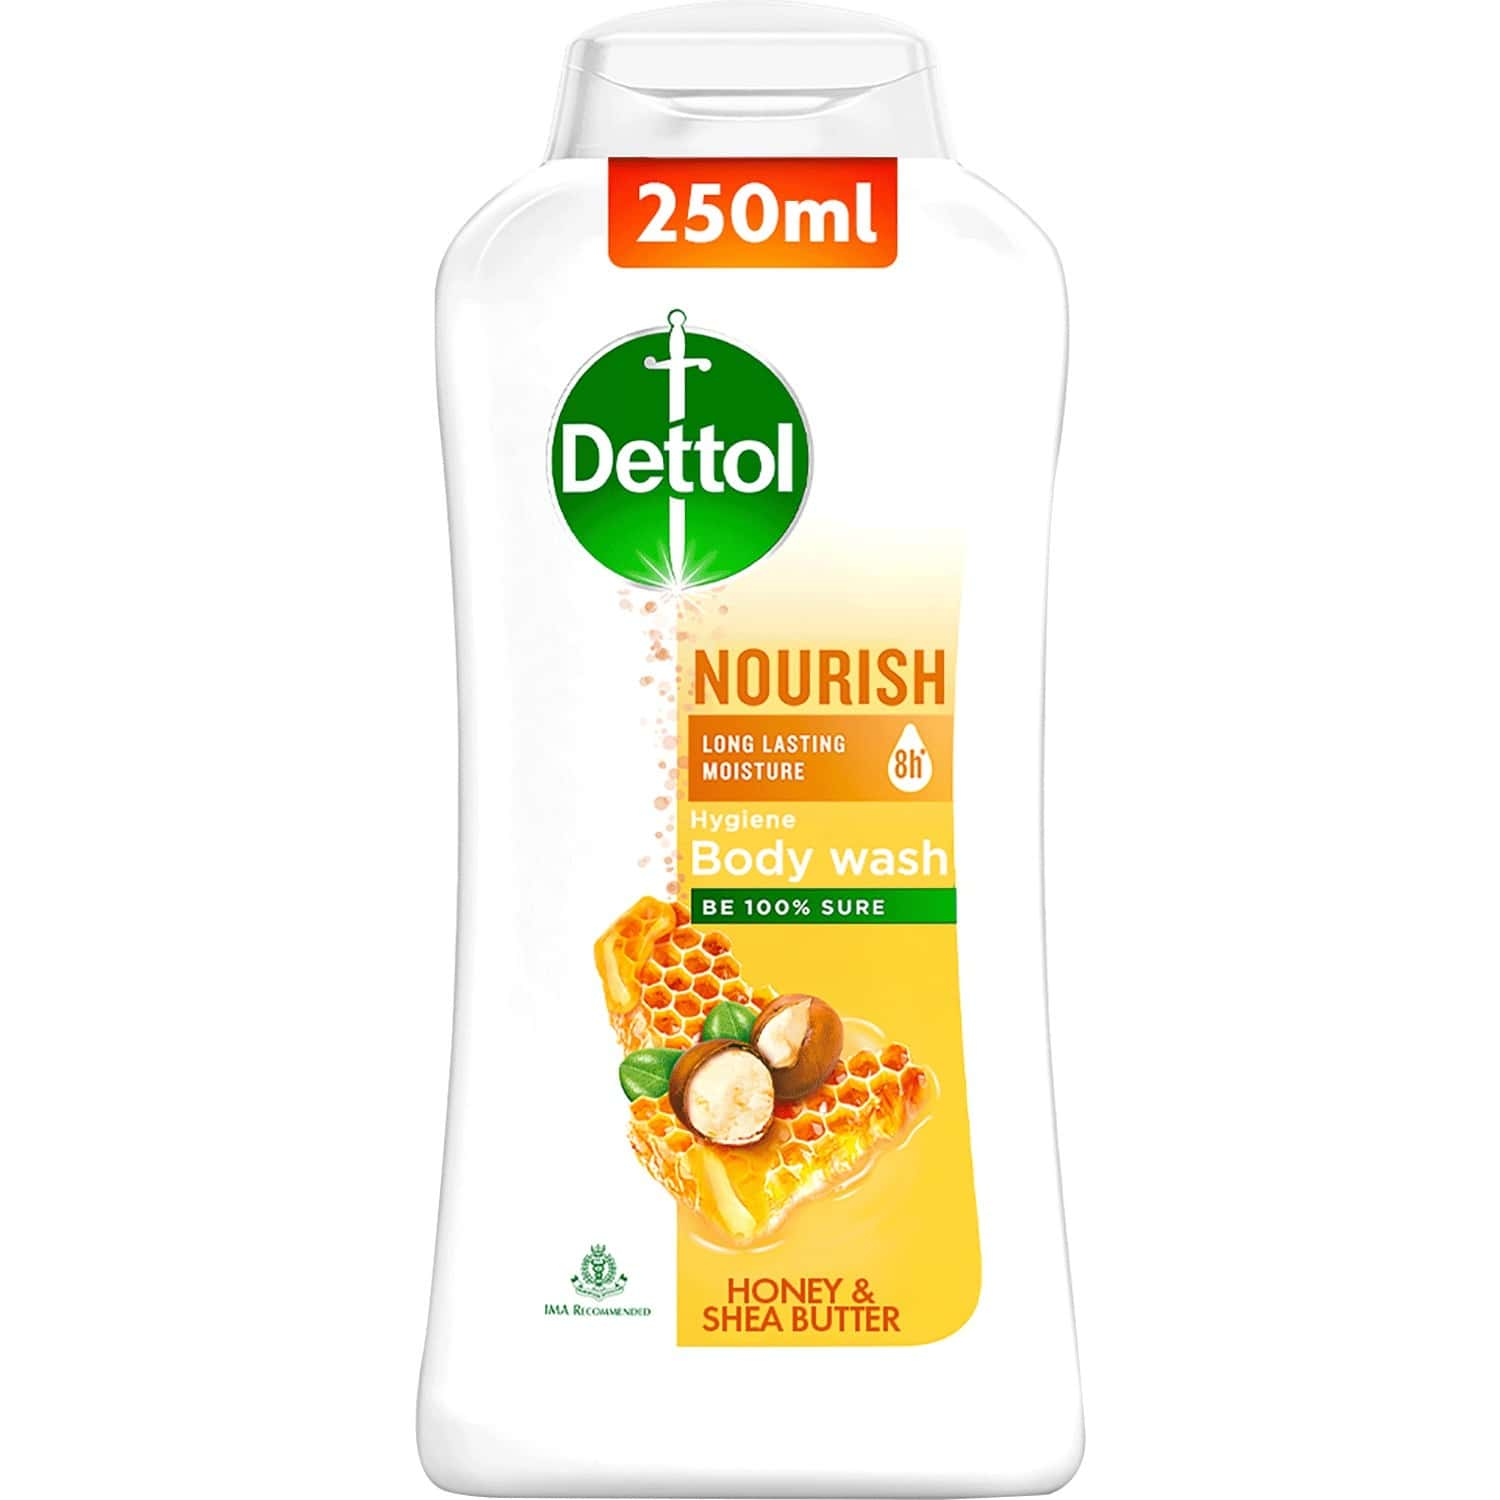 Dettol Body Wash And Shower Gel For Women And Men, Nourish - 250ml